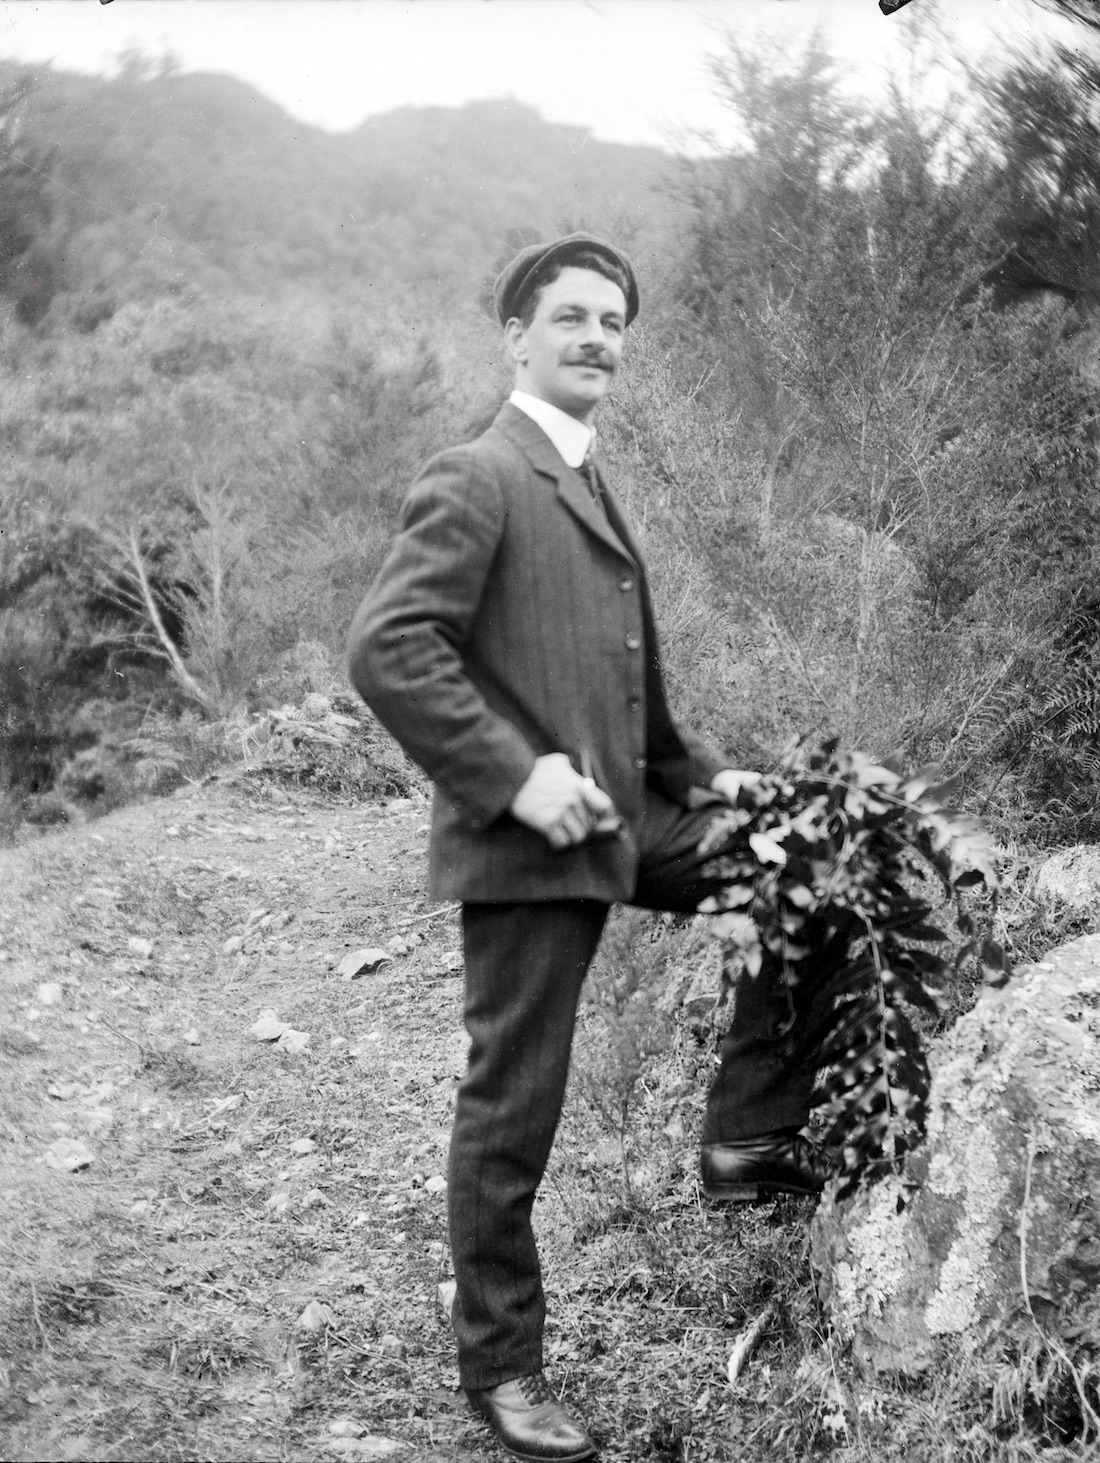 Outdoors portrait of Frederick William Campbell, New Zealand circa 1907-1916. Lemuel Lyes Collection.